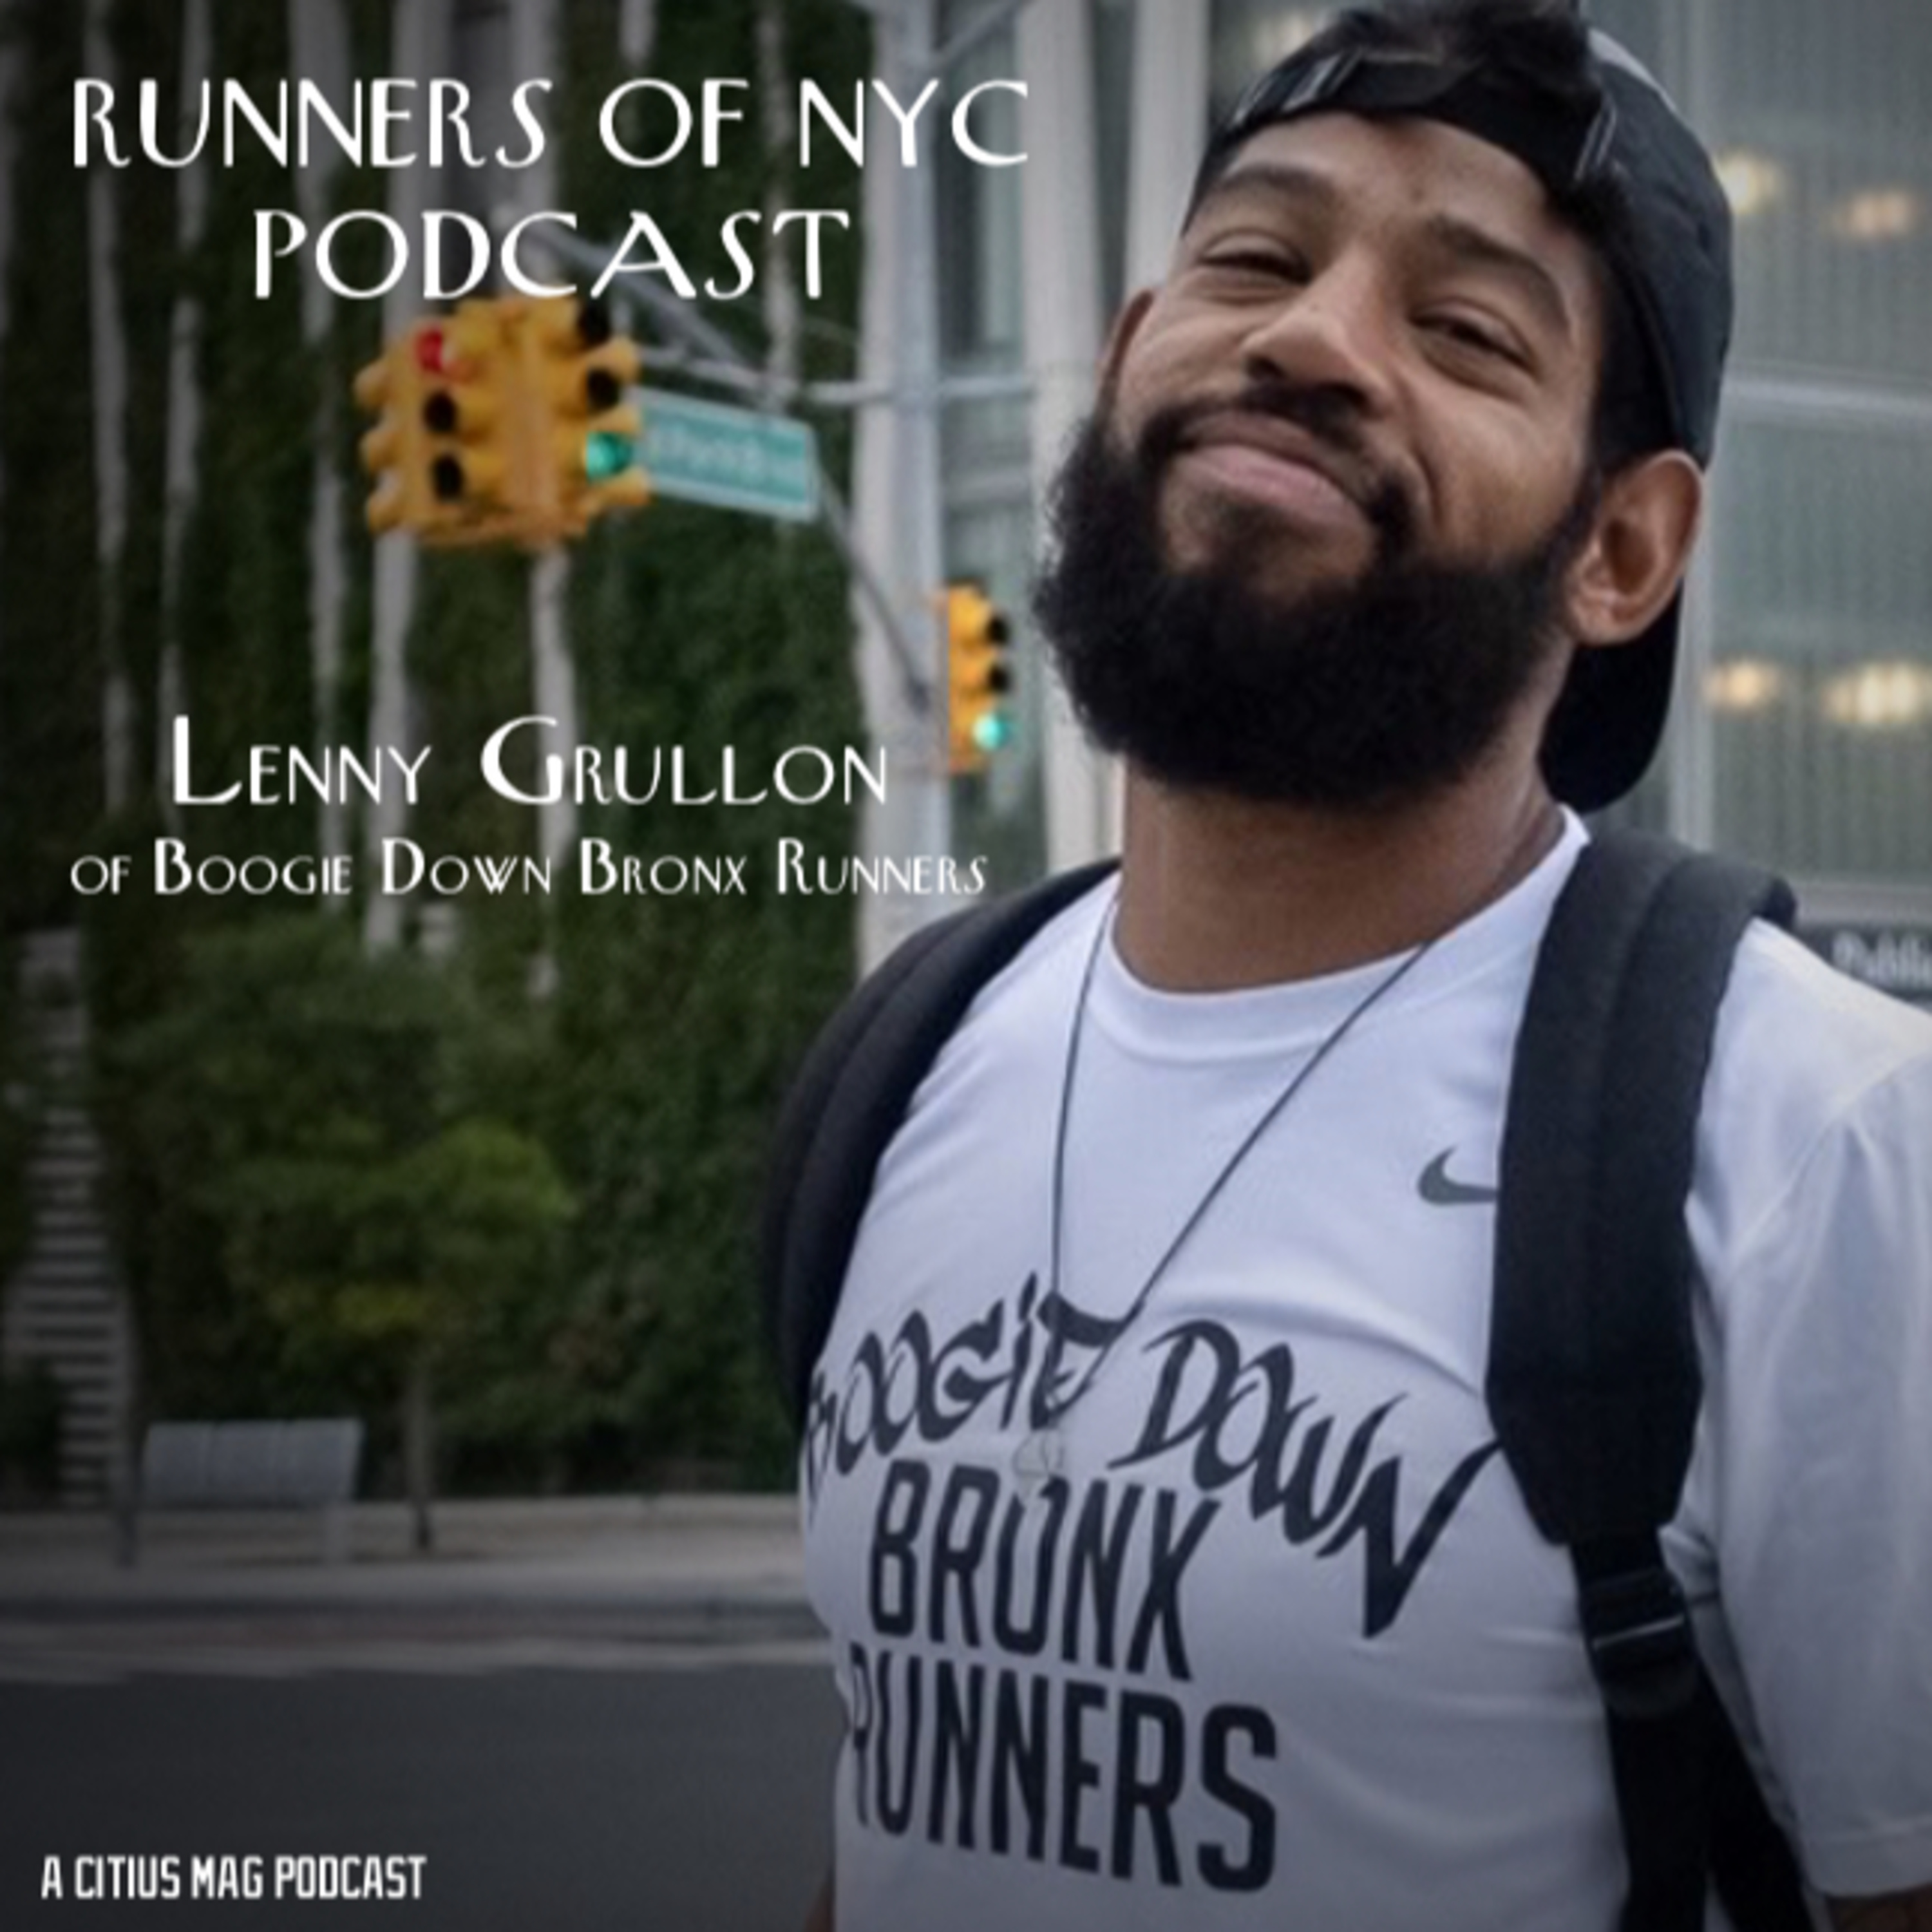 Episode 48 – Lenny Grullon of Boogie Down Bronx Runners